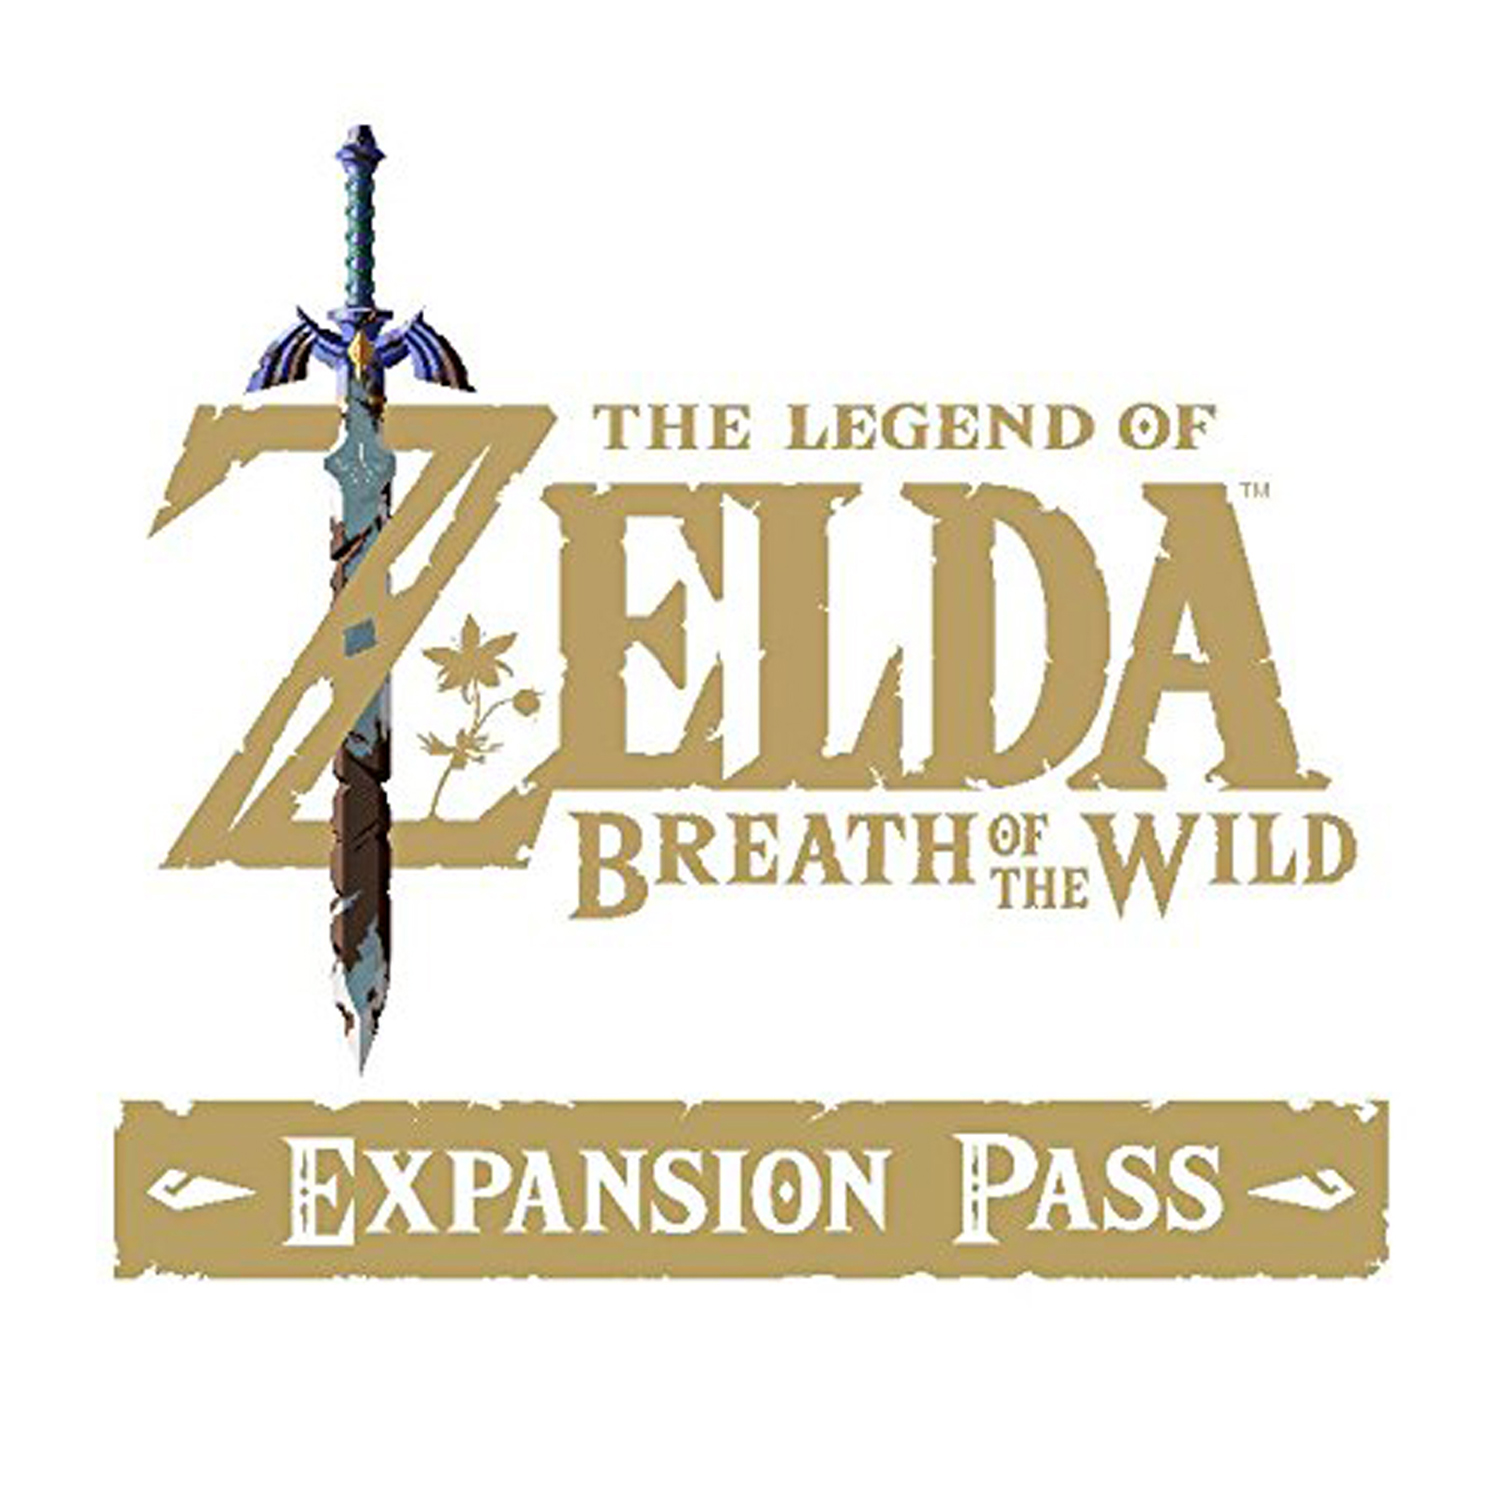 The Legend of Zelda™: Breath of the Wild Expansion Pass (Wii U Only), Nintendo, WIIU, [Digital Download], 0004549666202